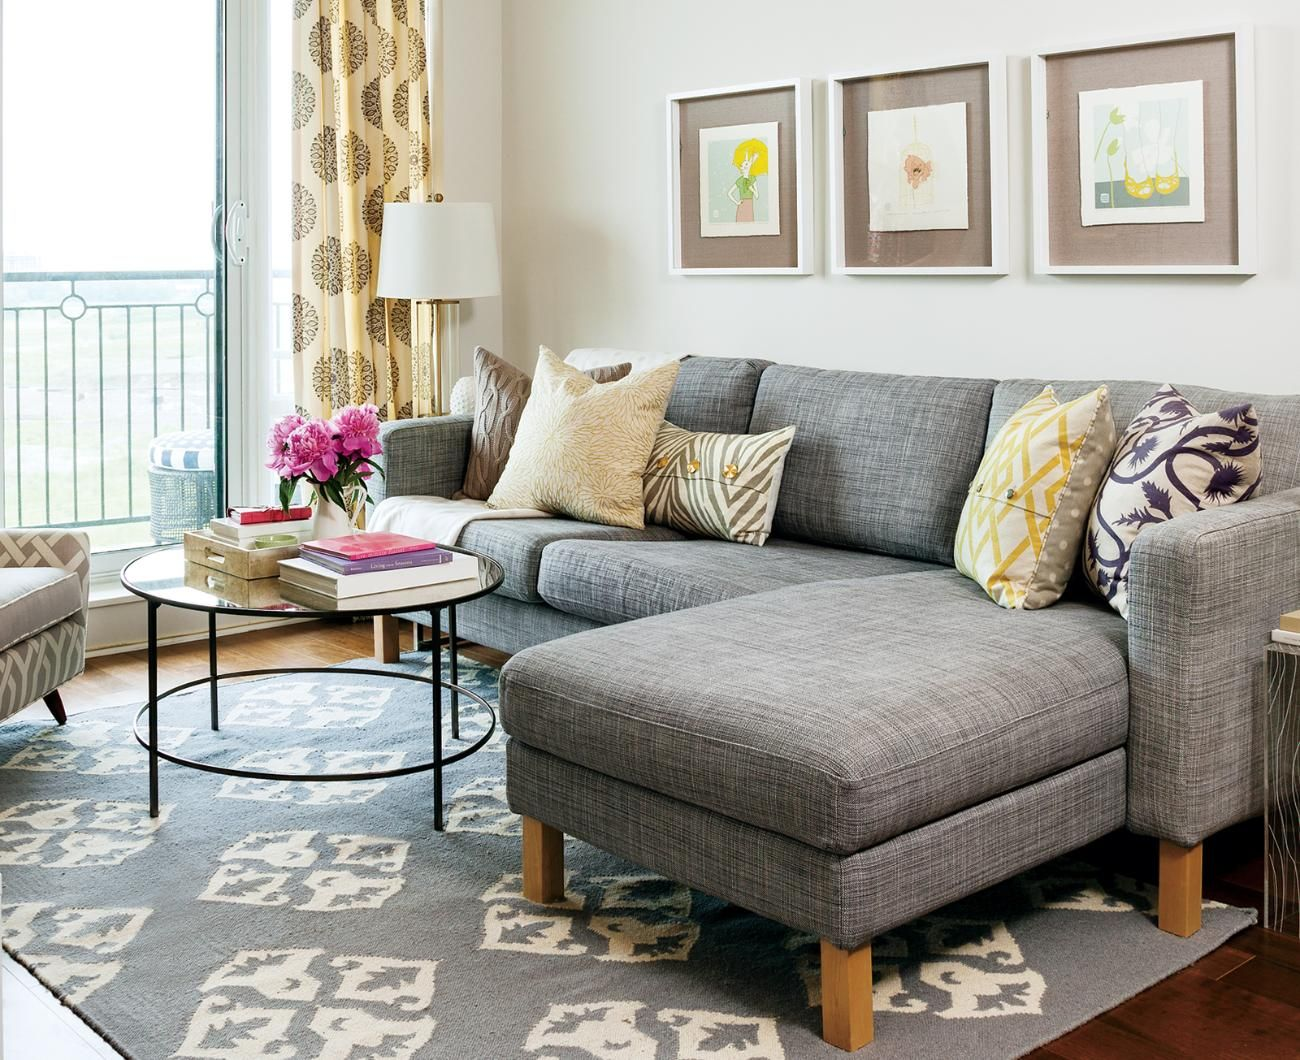 Nice Gold And Grey Living Roomu2014Gold And Grey Combine Beautifully In The Airy Living  Room.